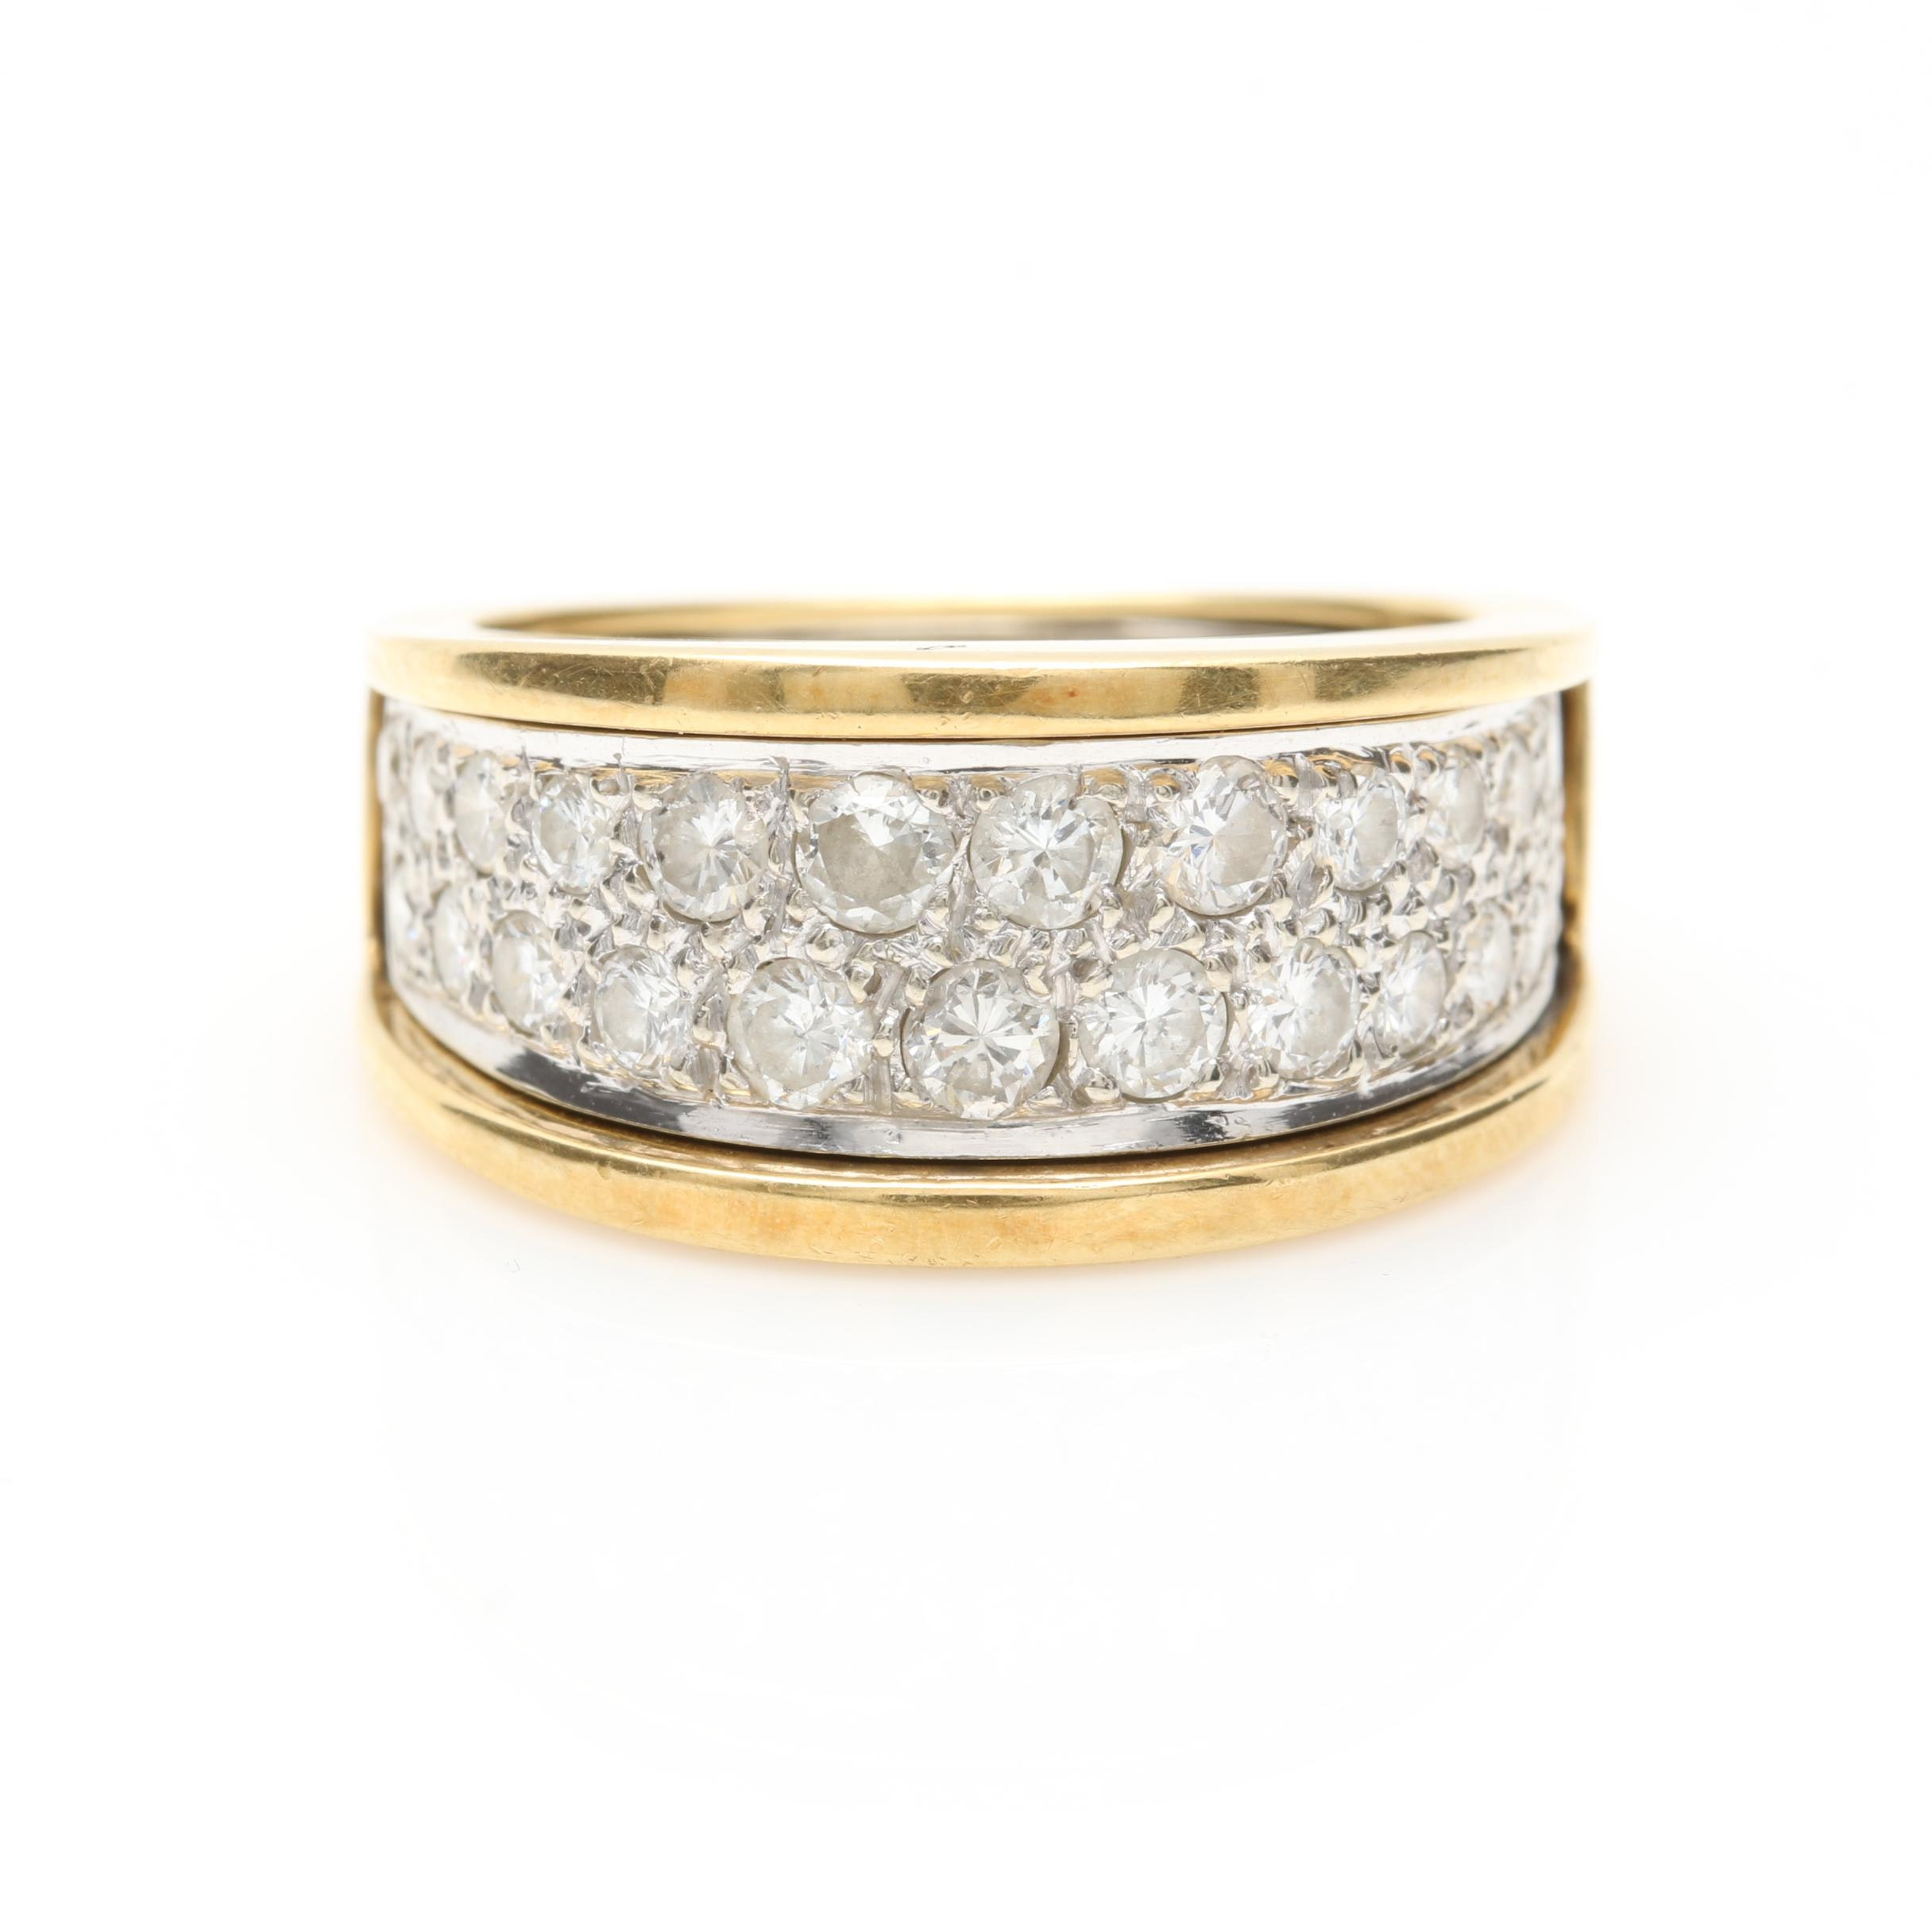 14K and 18K Two Tone 1.32 CTW Diamond Ring